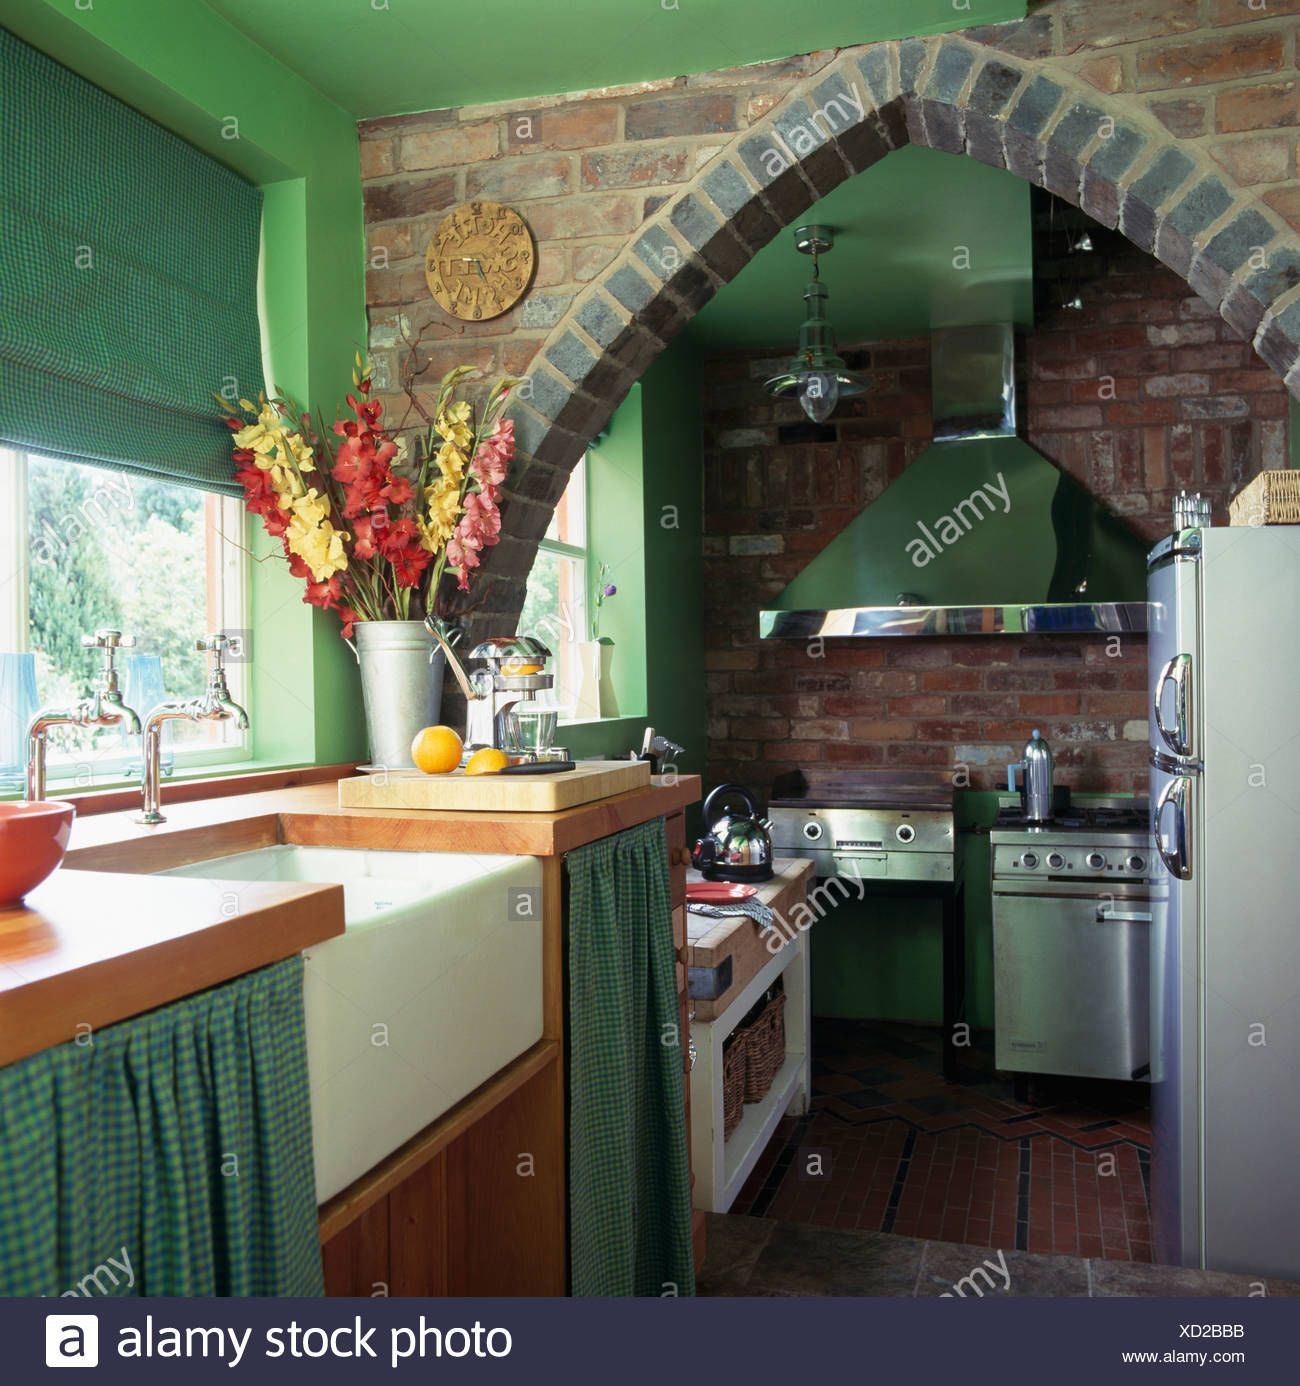 Brick Arch In Small Green Kitchen With Green Blind On Window Above Belfast  Sink In Fitted Unit With Green Checked Drapes